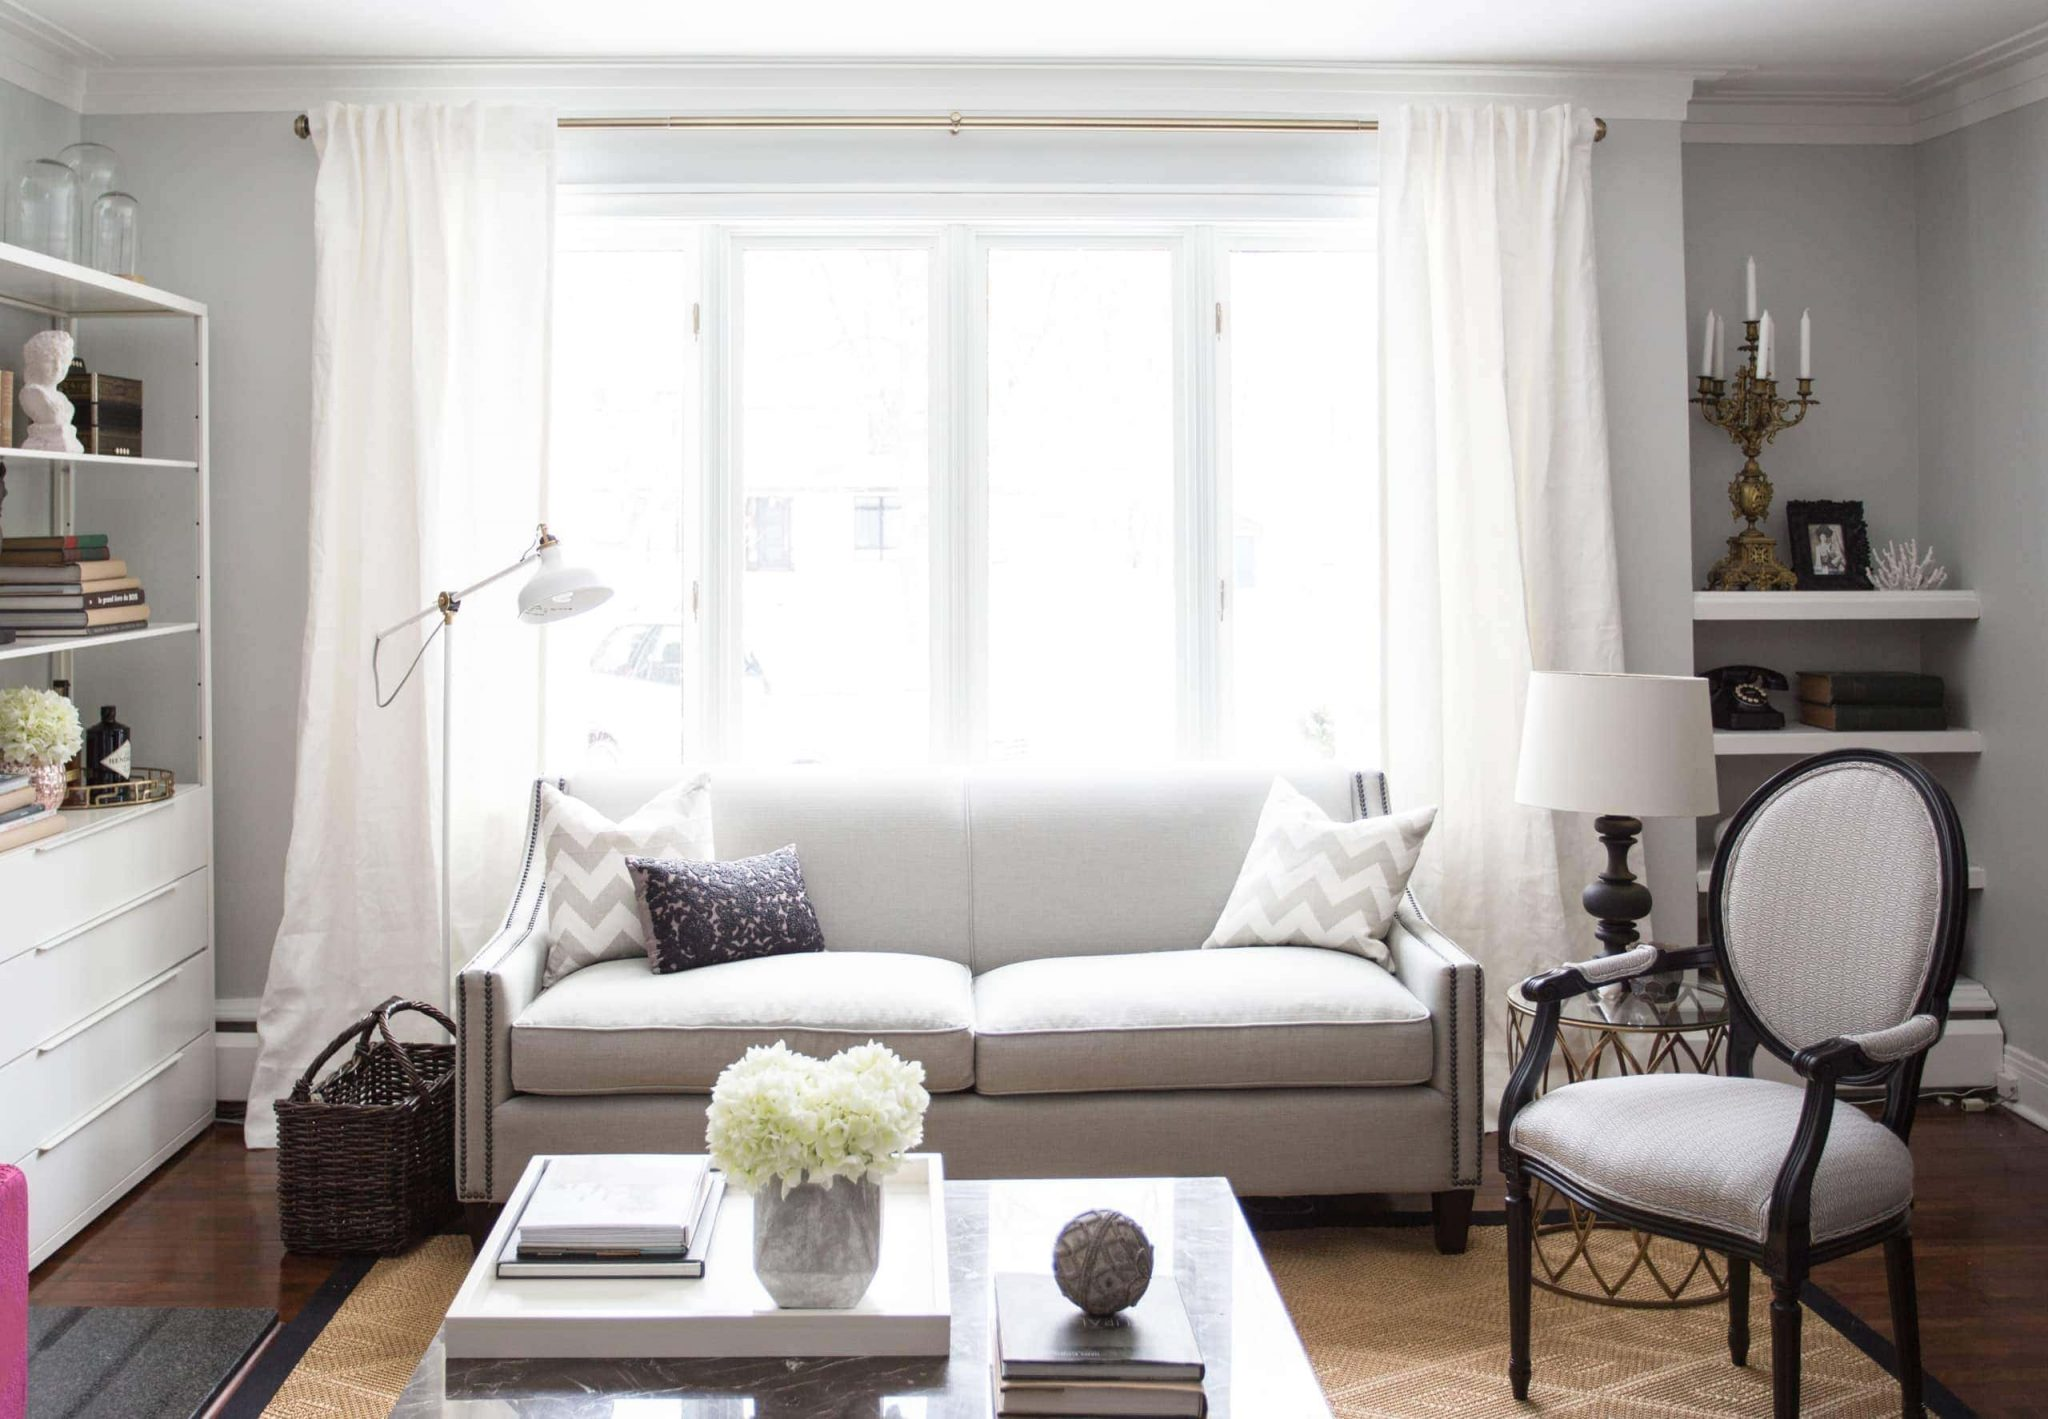 White couch against a large, bright window